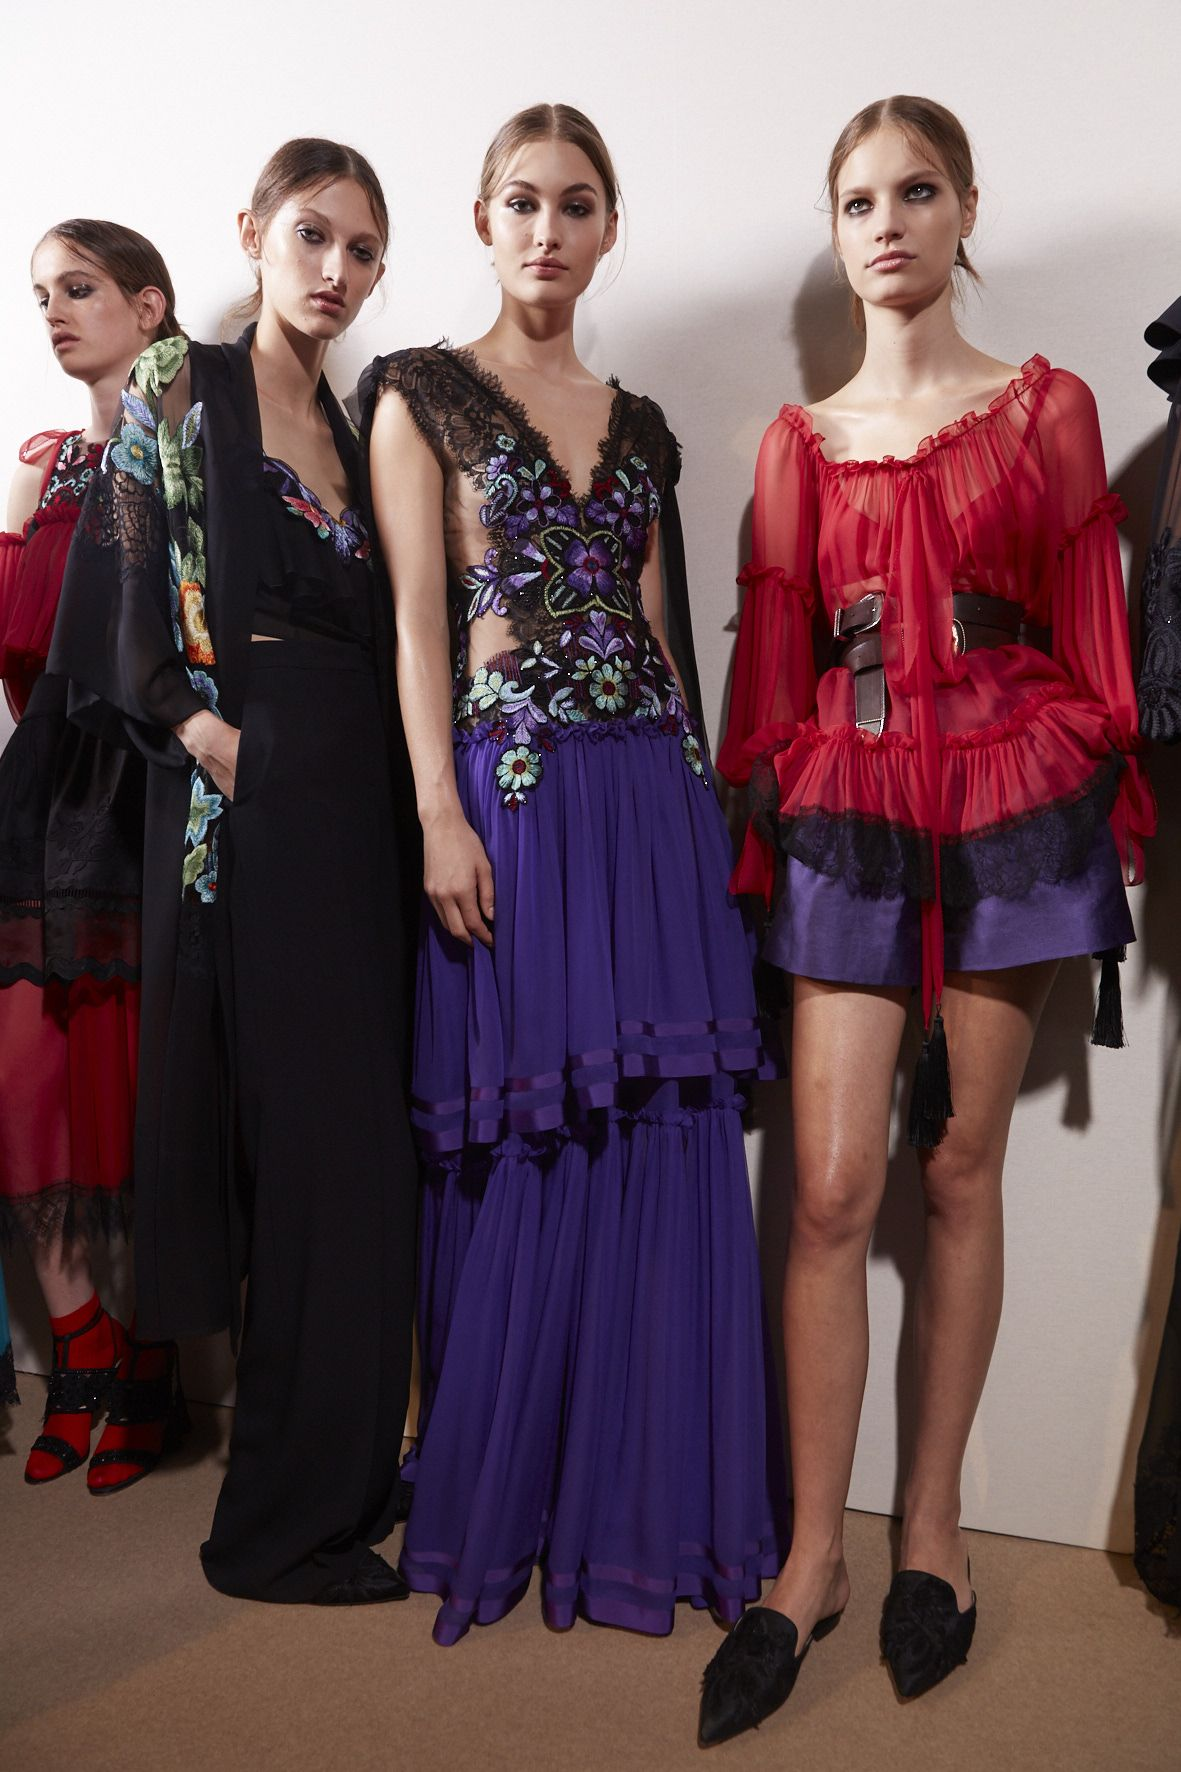 Backstage Alberta Ferretti Fashion Show